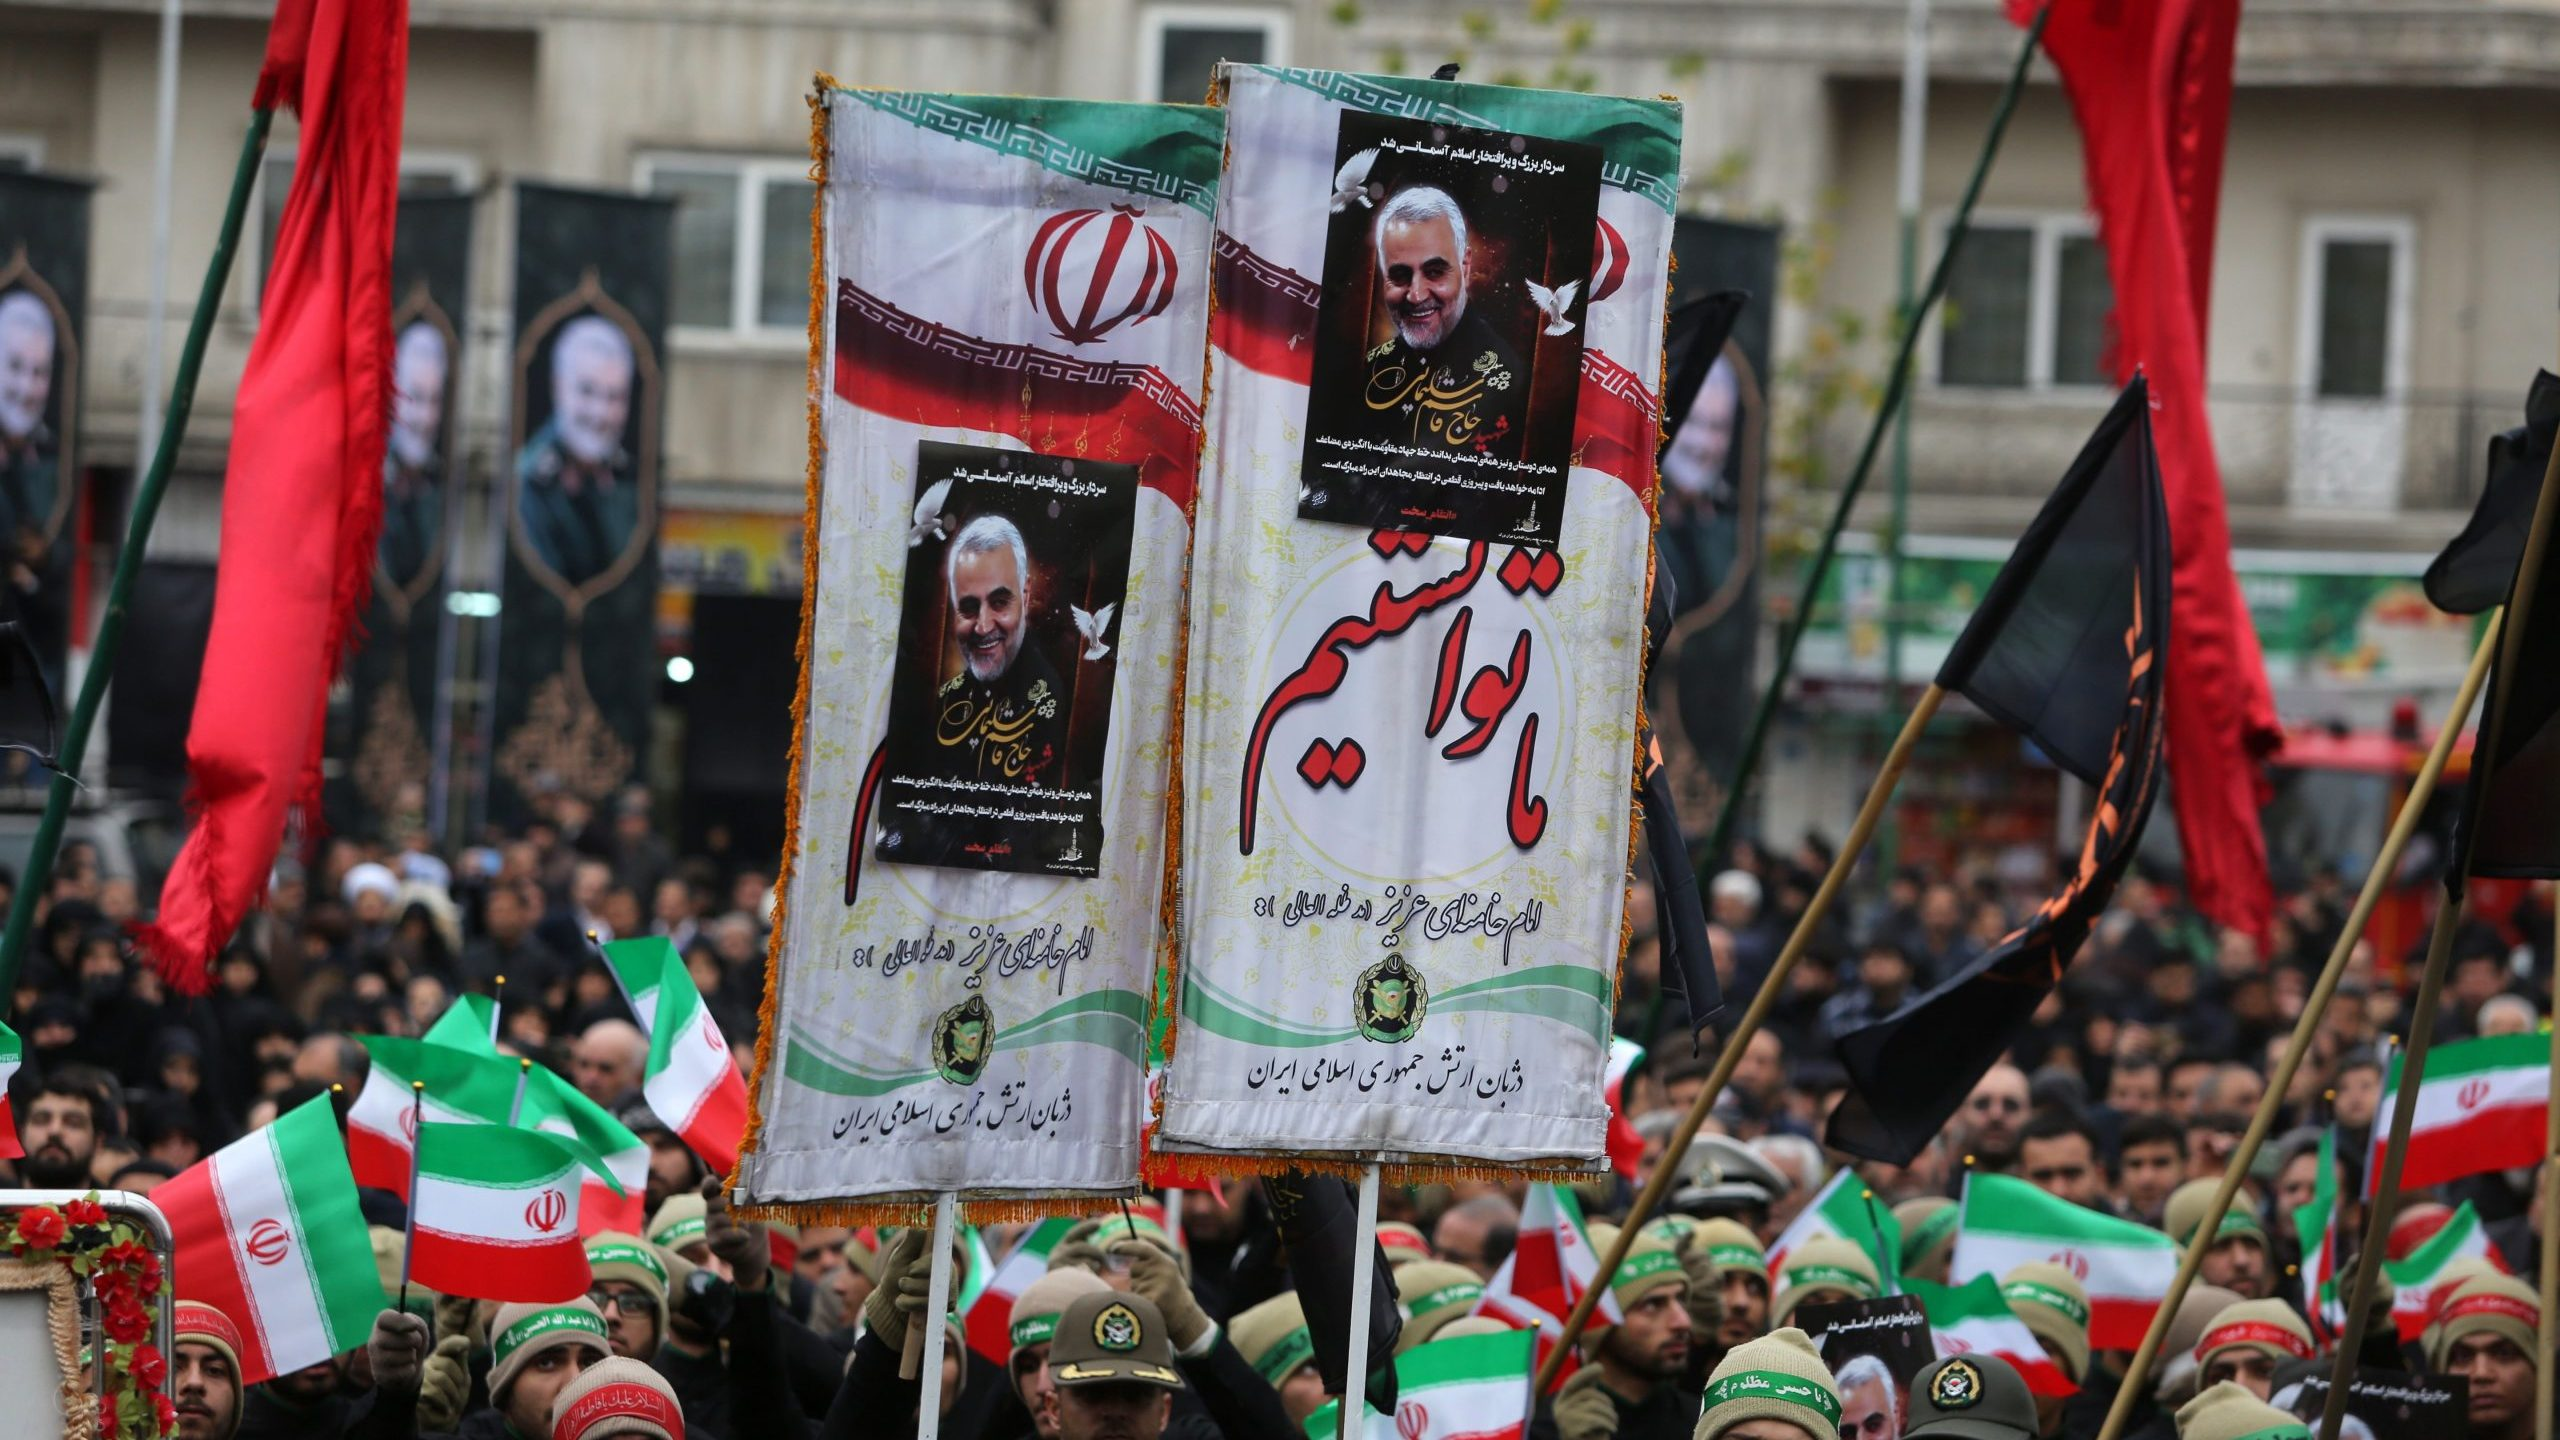 Iranians in Tehran take part in an anti-U.S. rally to protest the killing of Qassem Soleimani on Jan.4, 2020. (Credit: Atta Kenare/AFP via Getty Images)